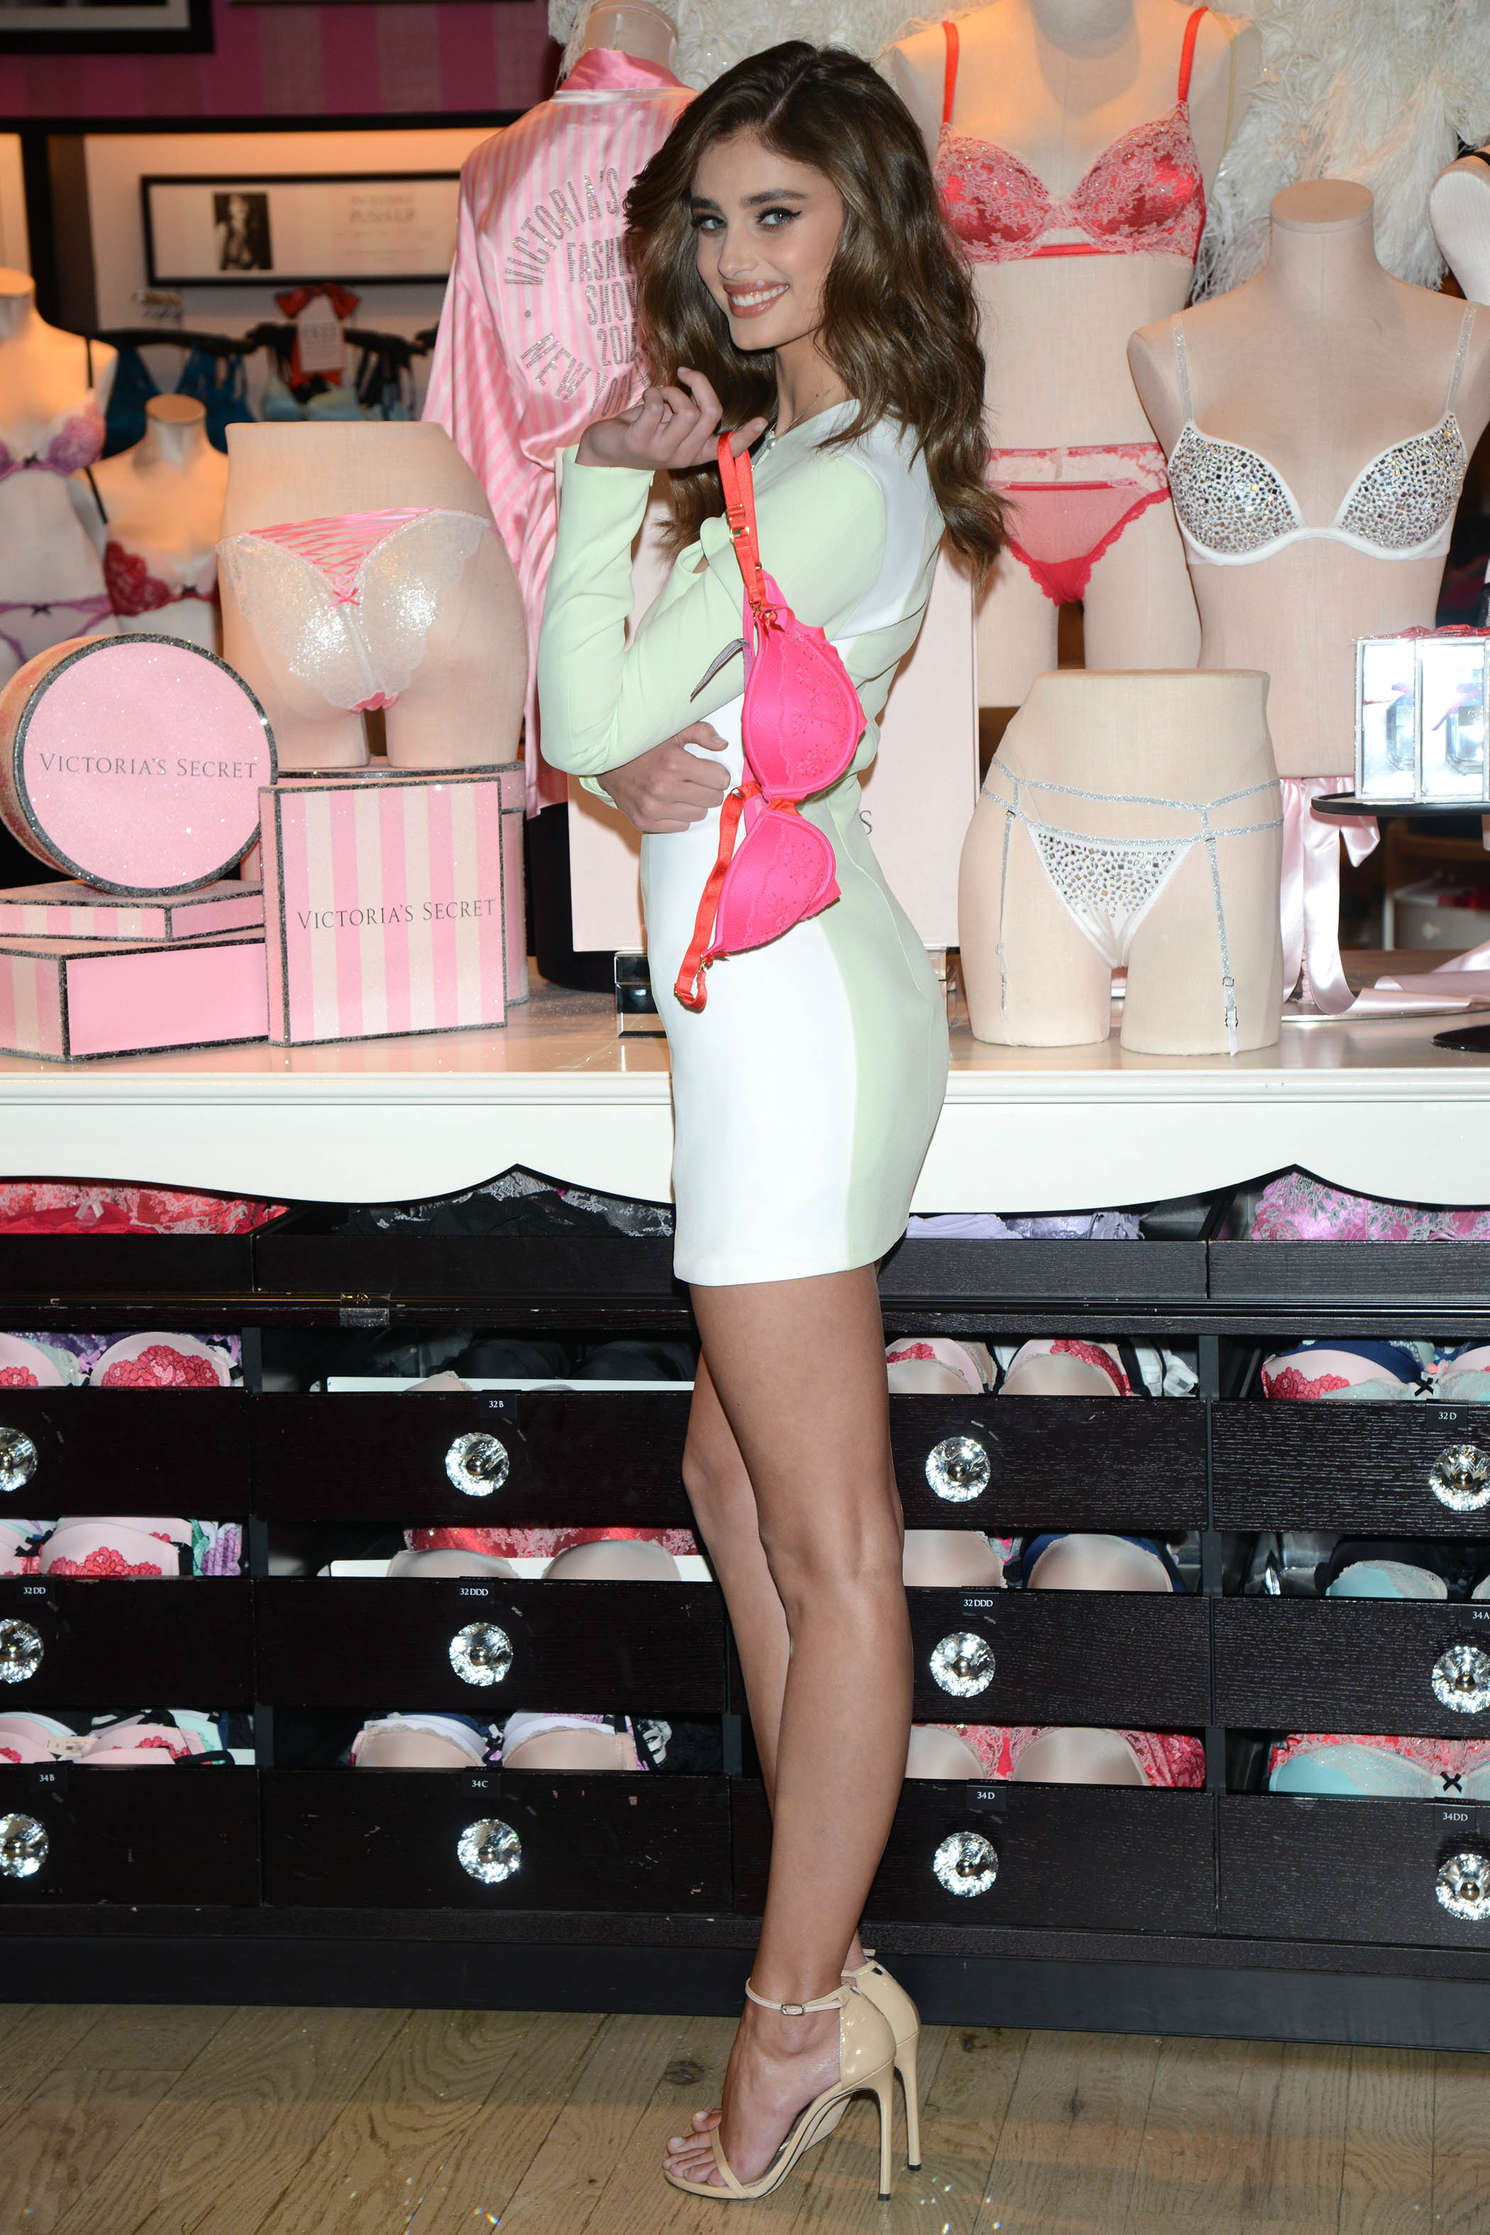 Taylor Hill 2015 : Taylor Hill: Revealing Runway Looks at Victorias Secret -26